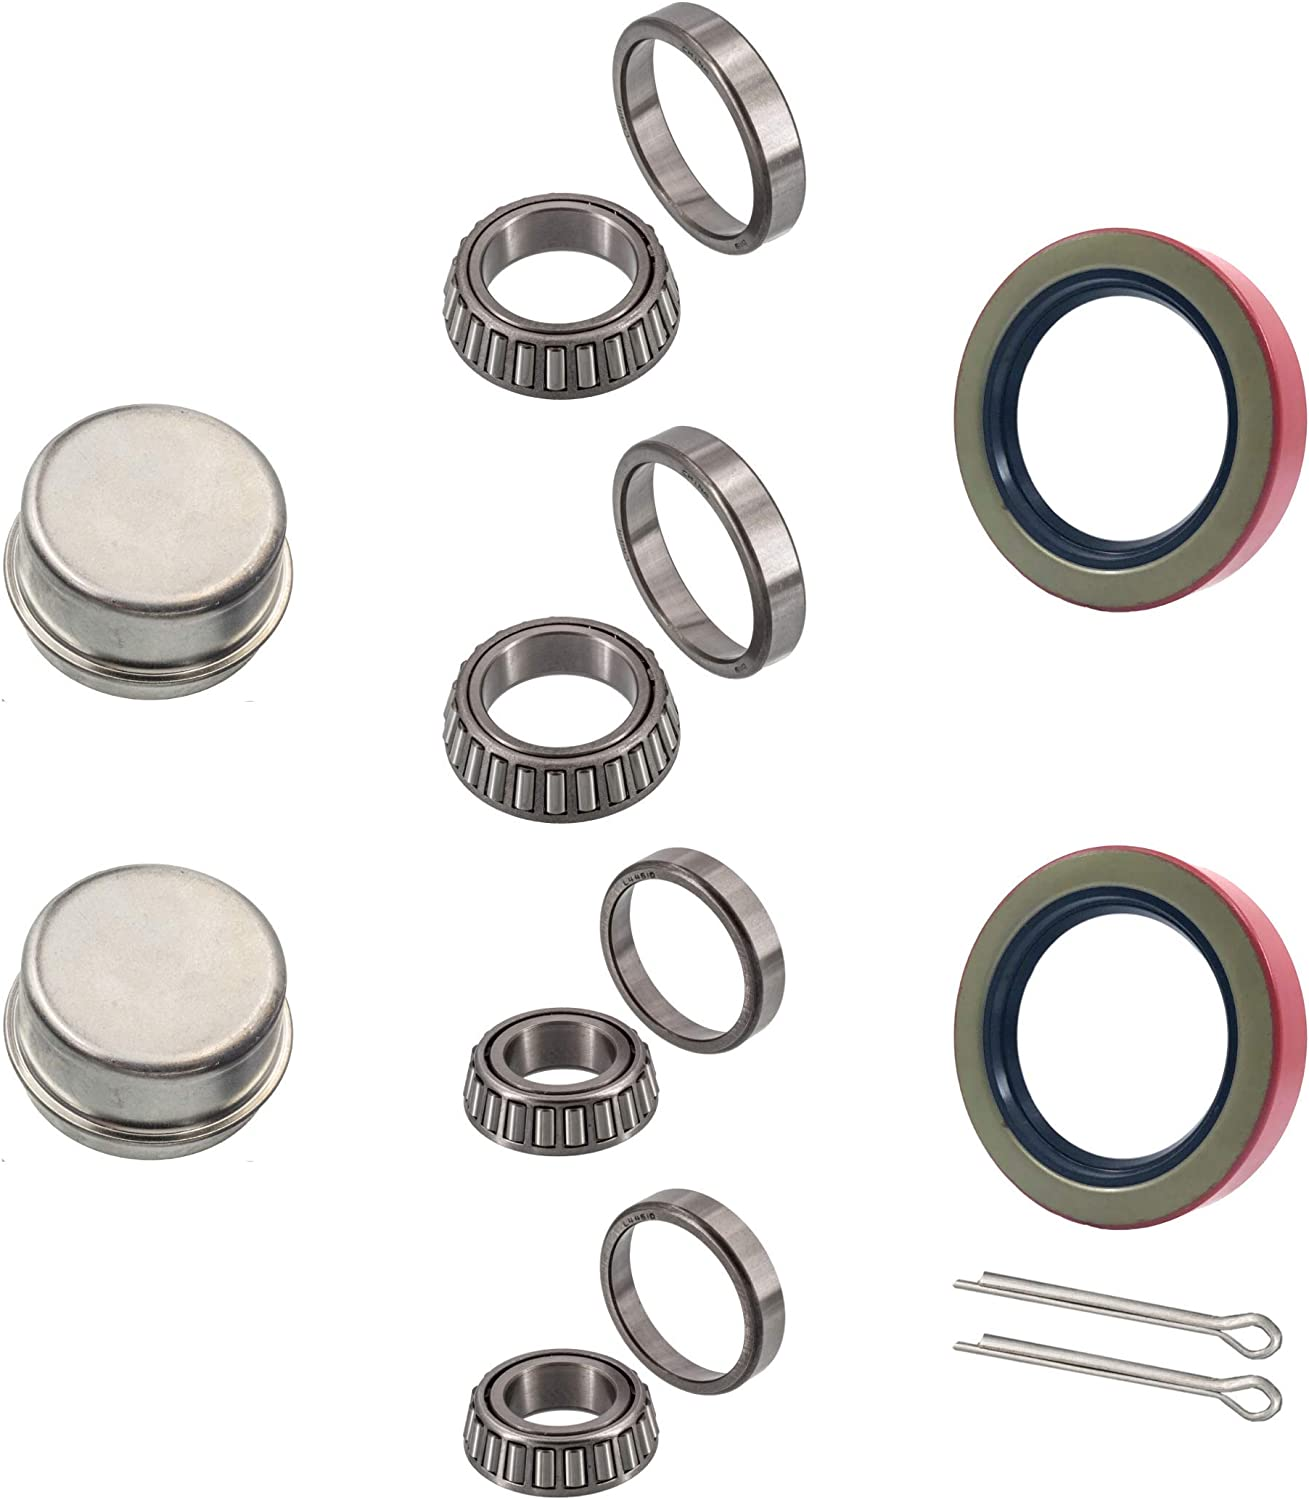 Doc's Auto Gifts Parts Trailer Bearing Repair 2021 Inch to fits 8 Kits 1-3